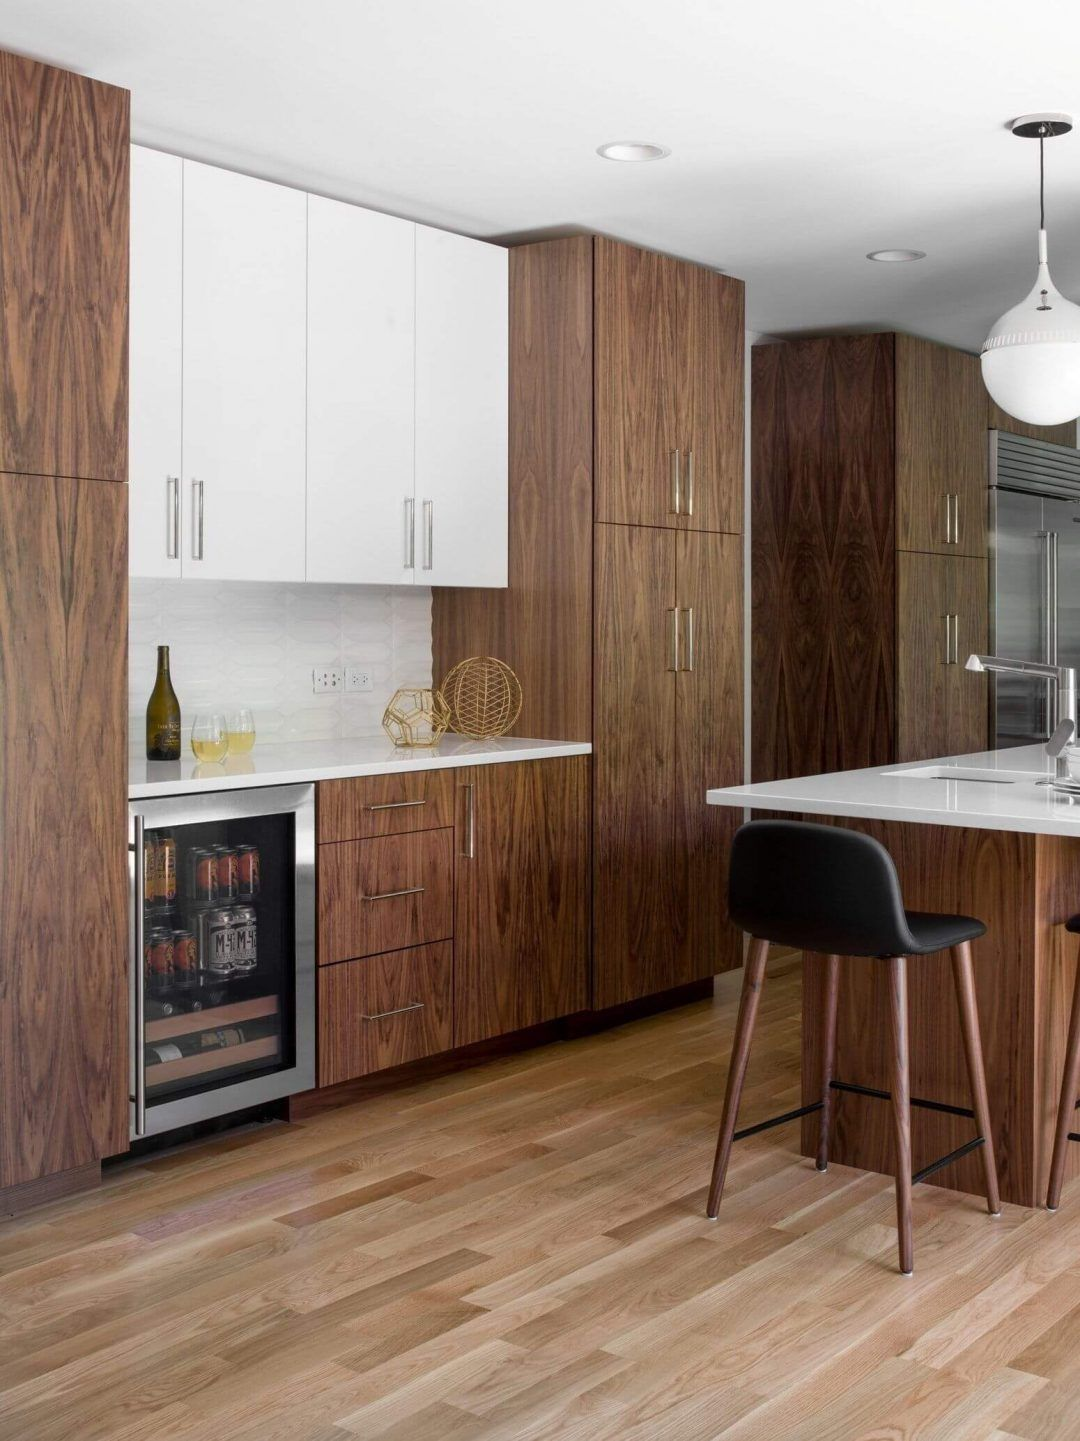 25 Mid Century Modern Kitchen Ideas To Beautify Your Cooking Area - 75Ef7635E08Afa546170F0Dcdaadd1A0